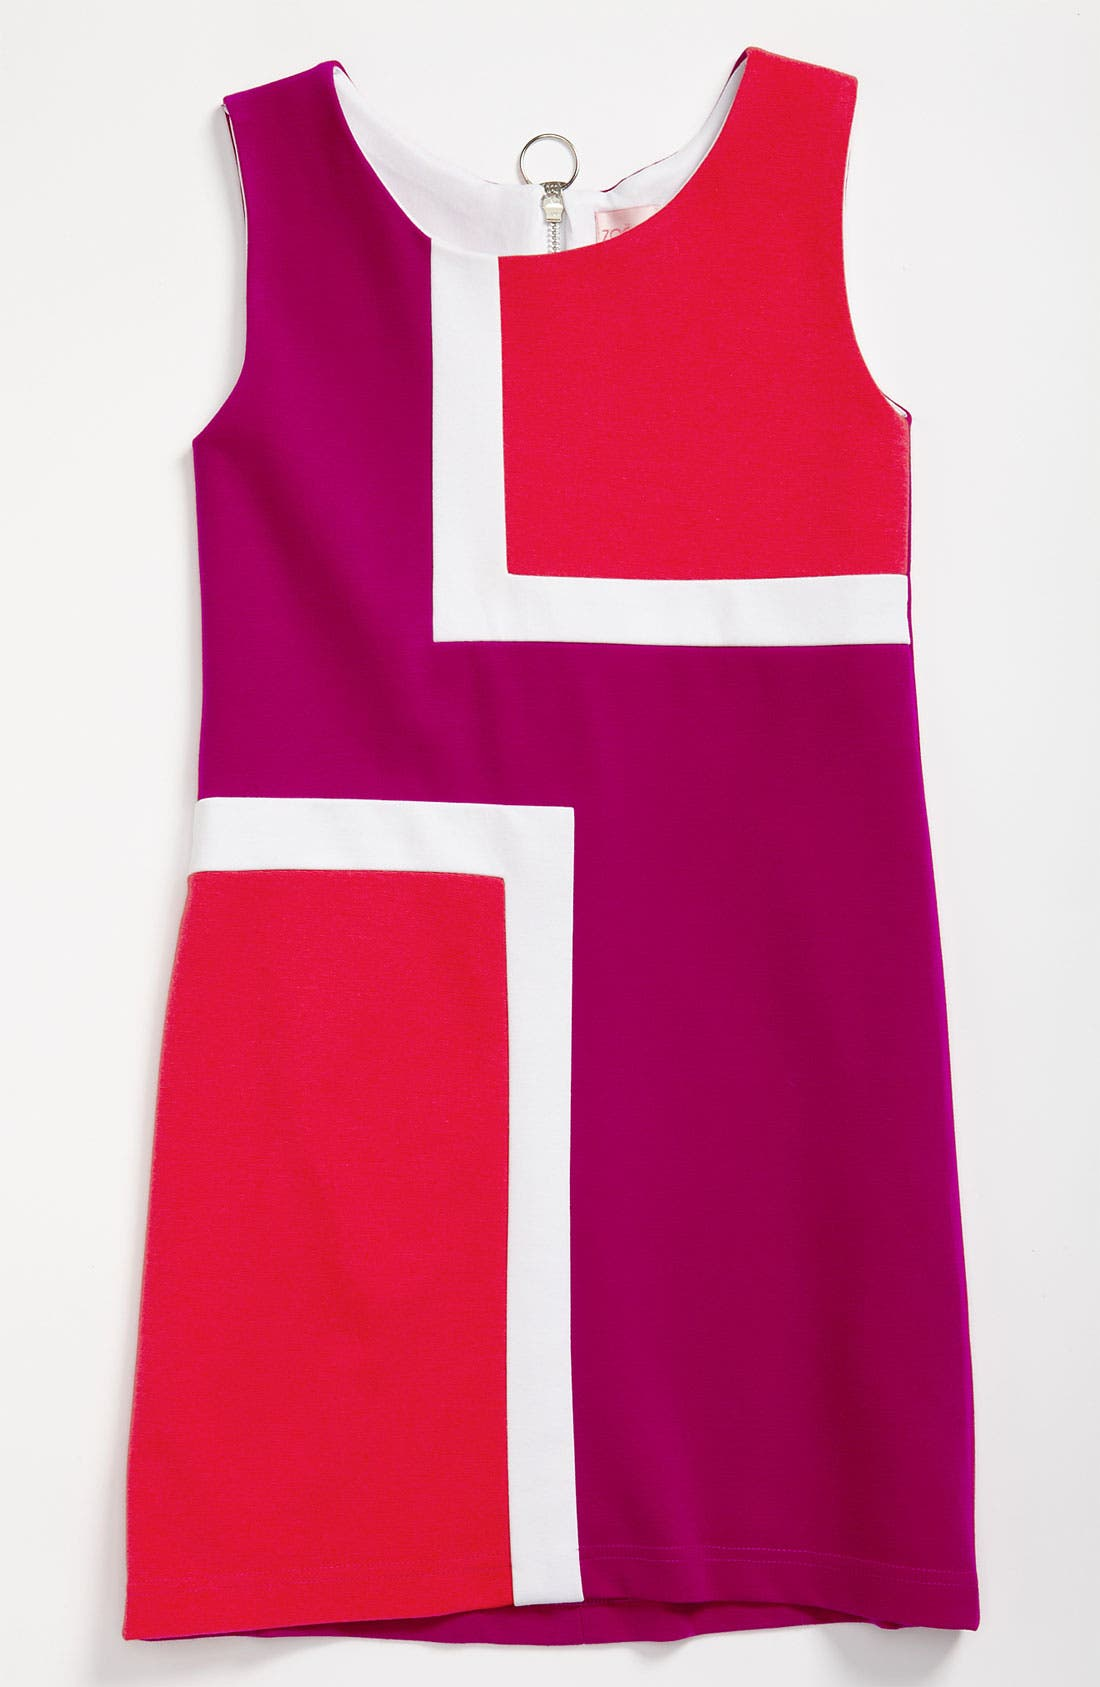 Alternate Image 1 Selected - Zoe 'Mod Square' A-Line Dress (Big Girls)